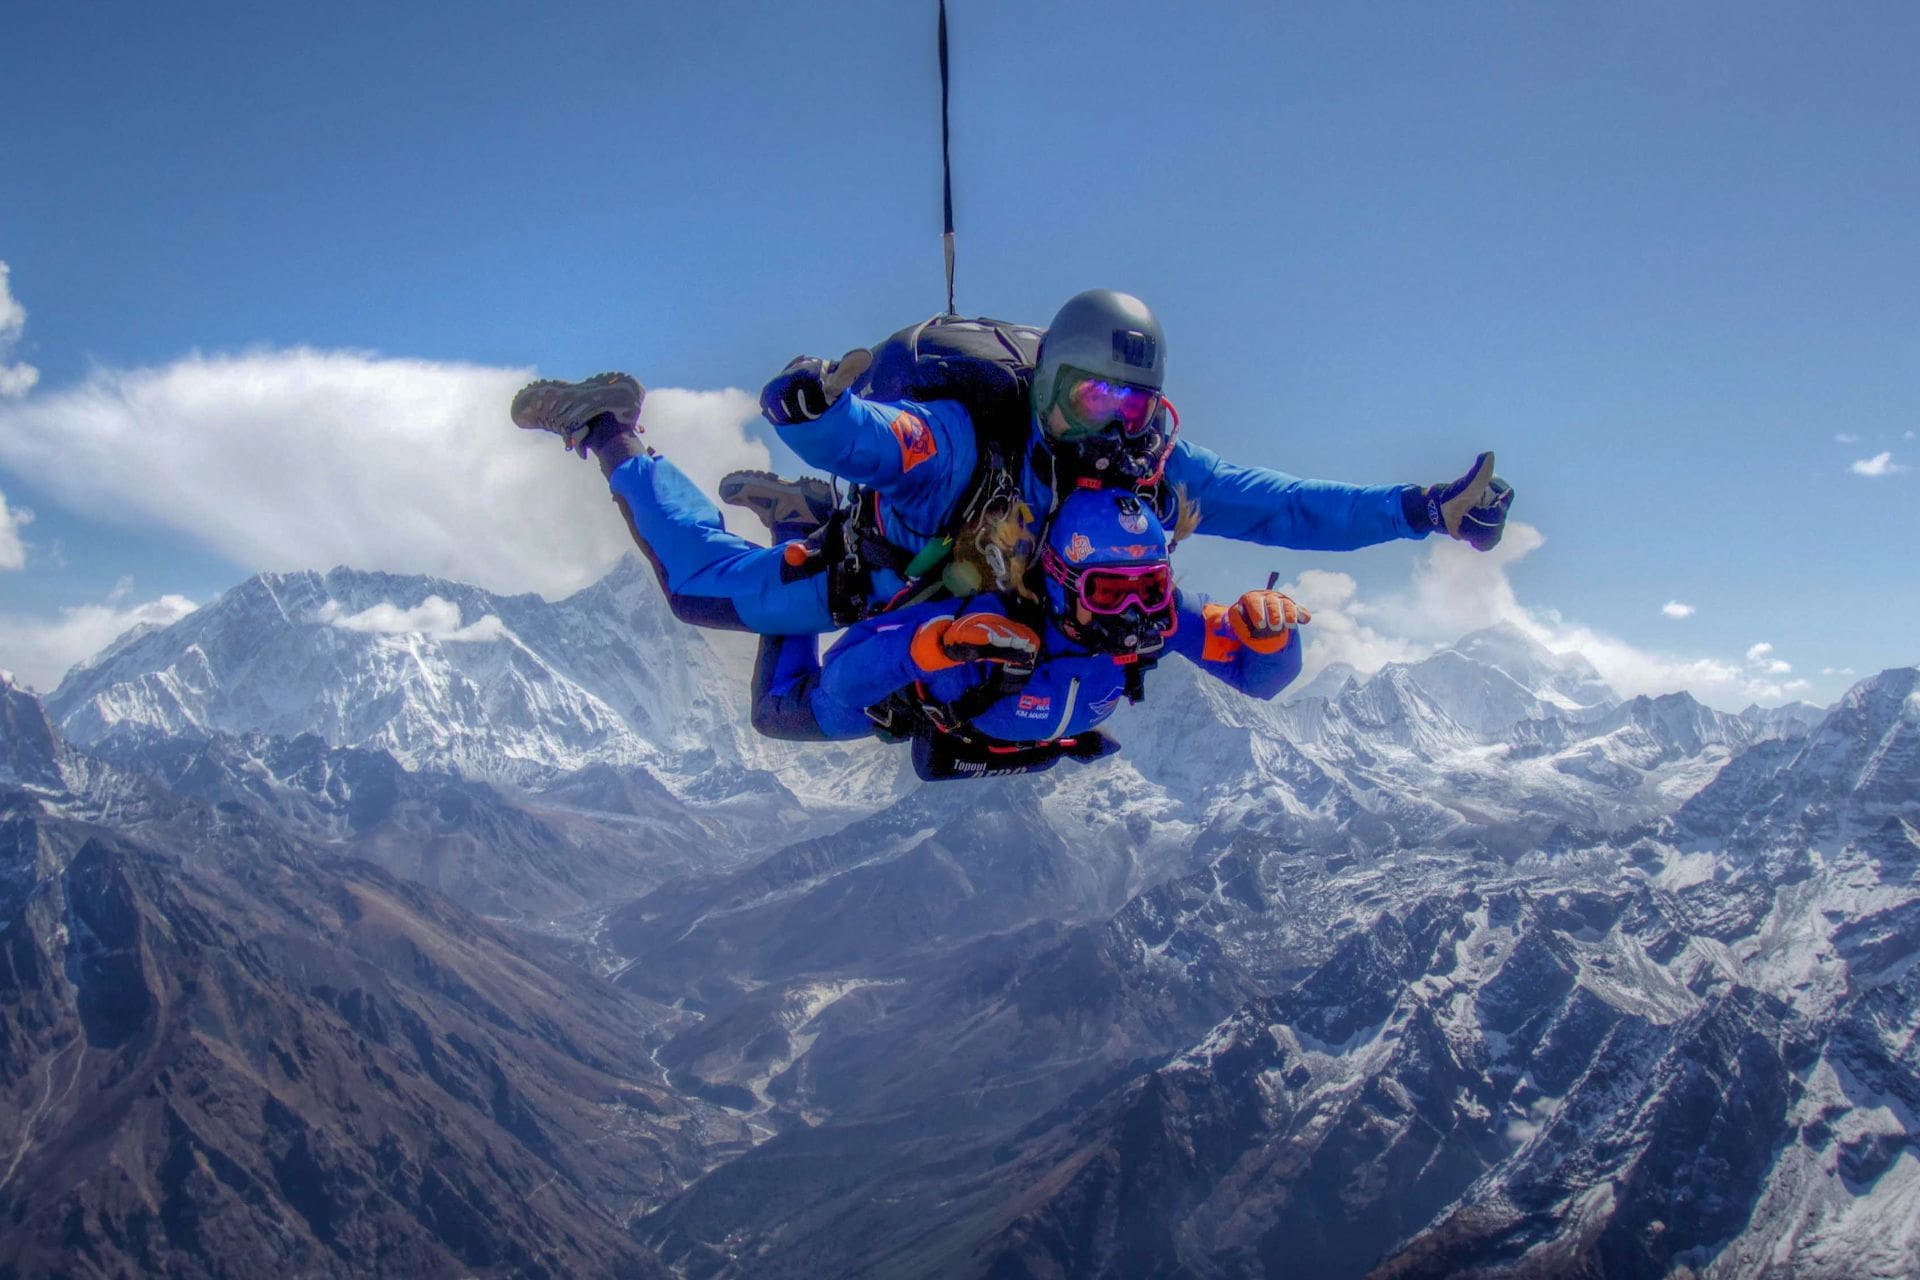 tandem-skydive-over-mount-everest-adrenaline-junkie-bucket-list